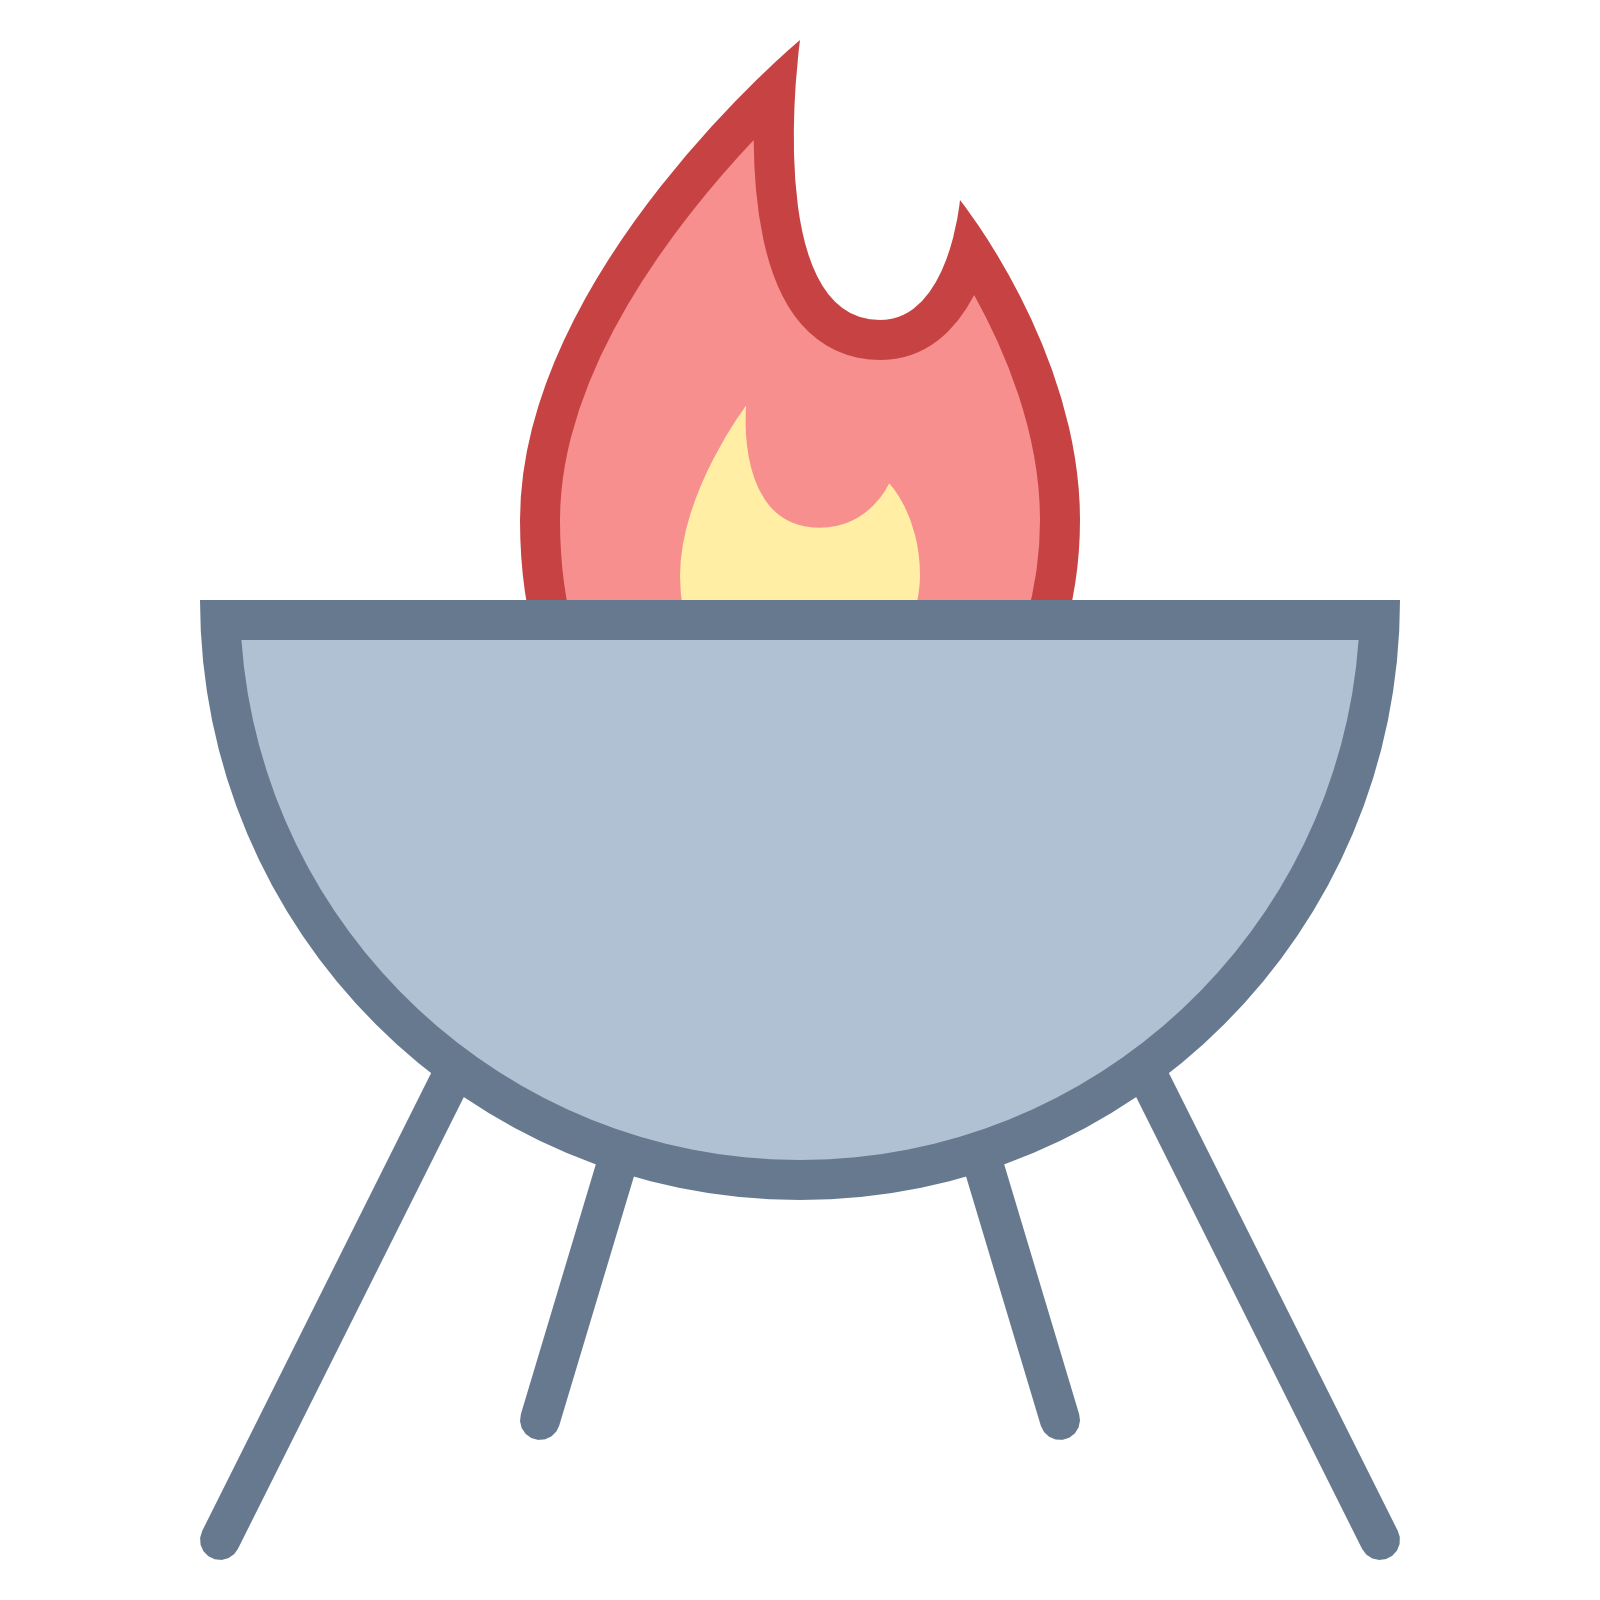 Transparent grill circle. Clipart free download on